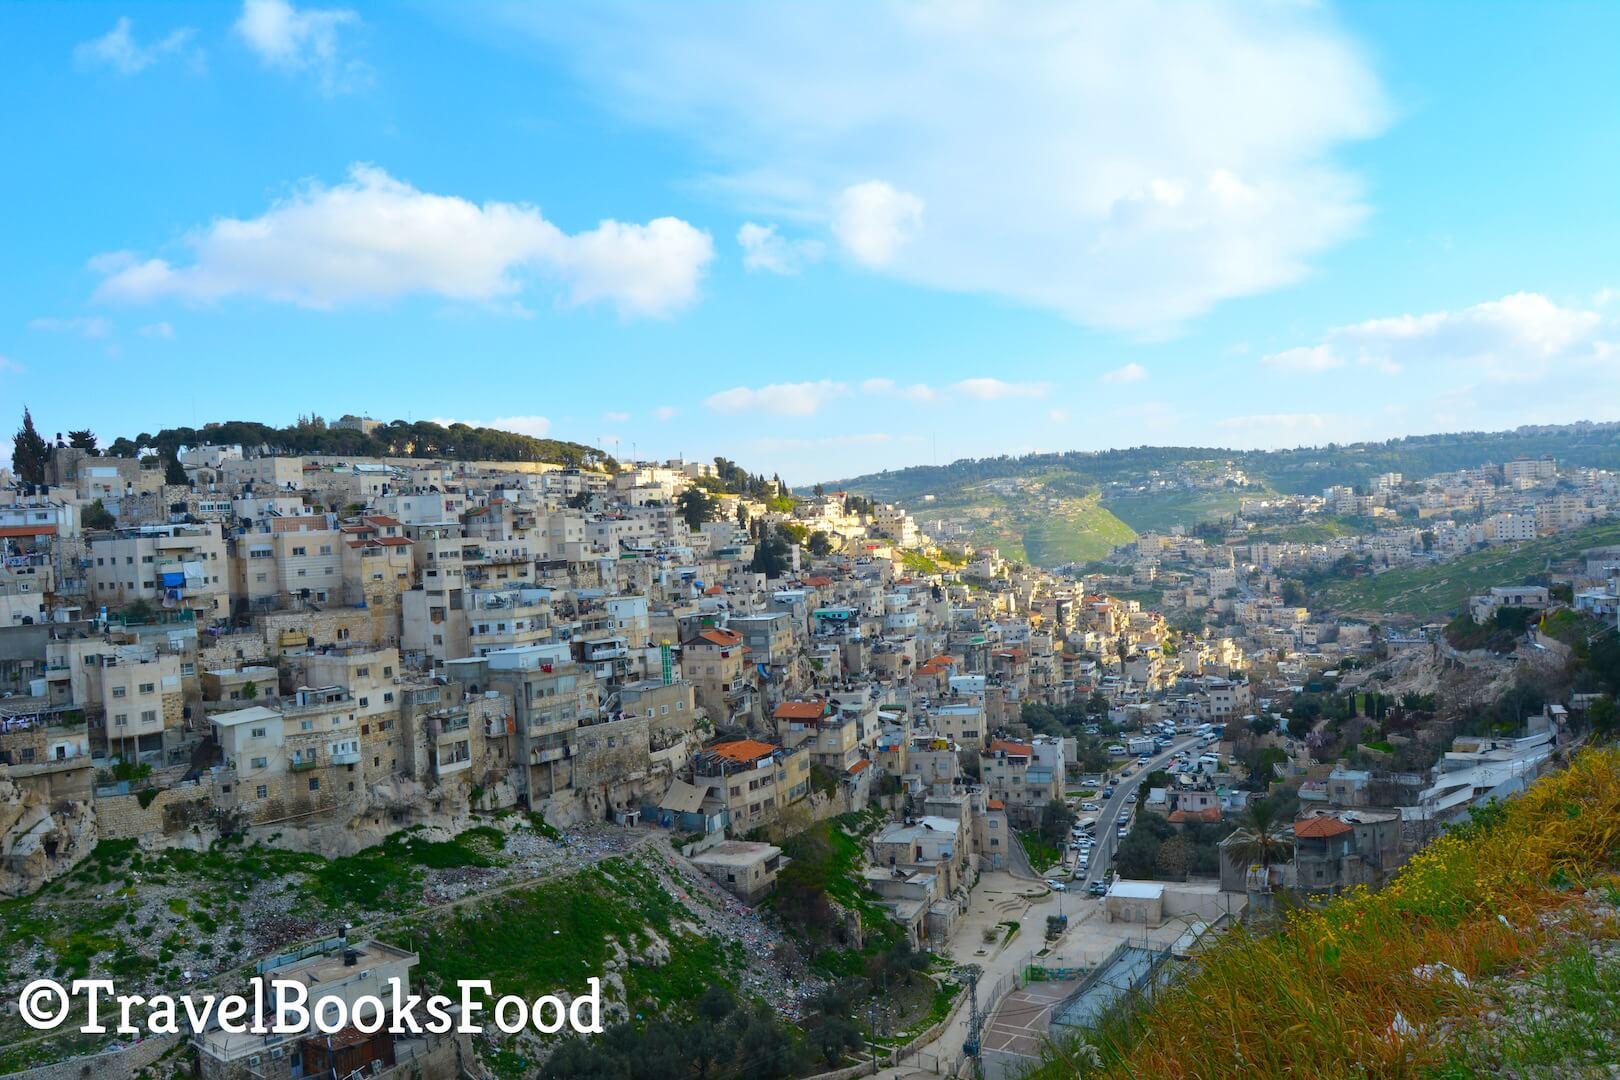 A view from the top of a neighbourhood in Jerusalem, Israel